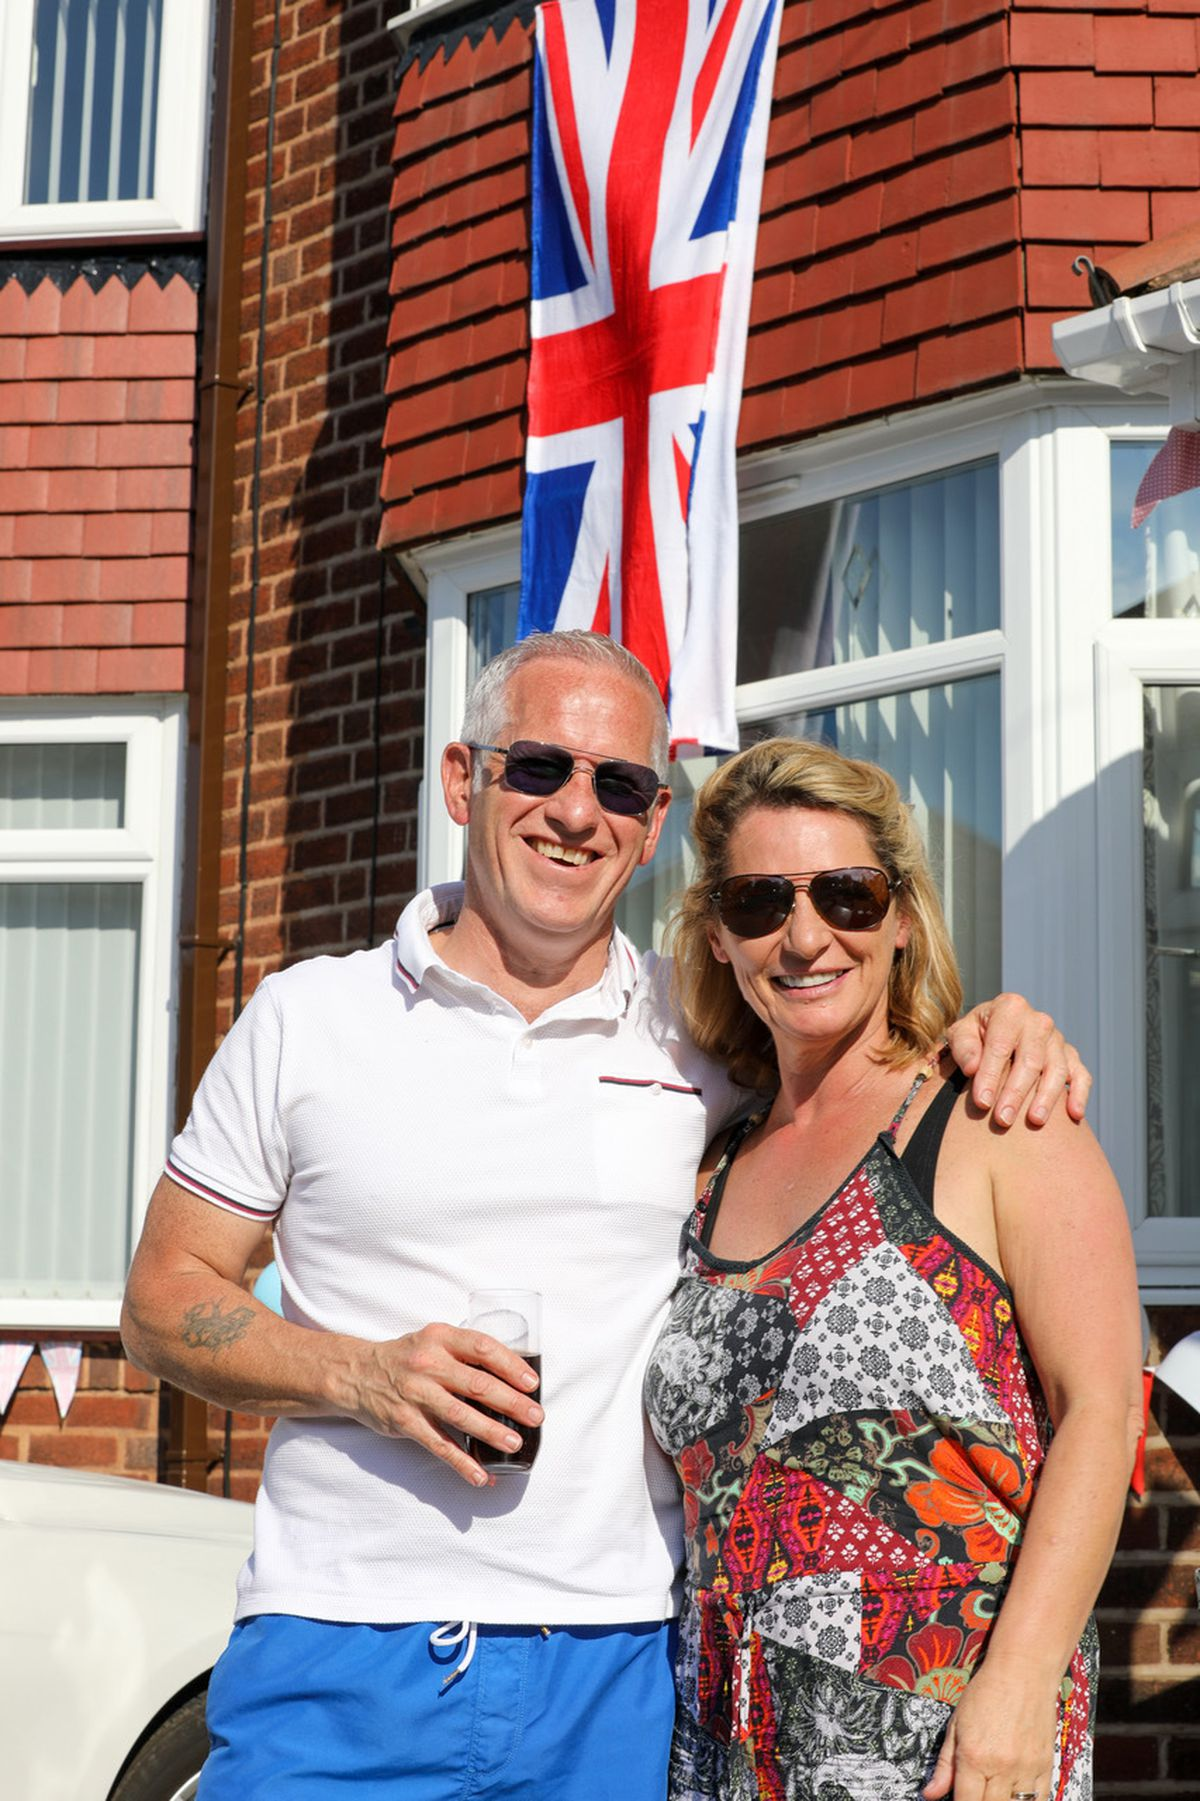 Celebrations in Shaftesbury Road, Wednesbury. Pic: Kennett Photography